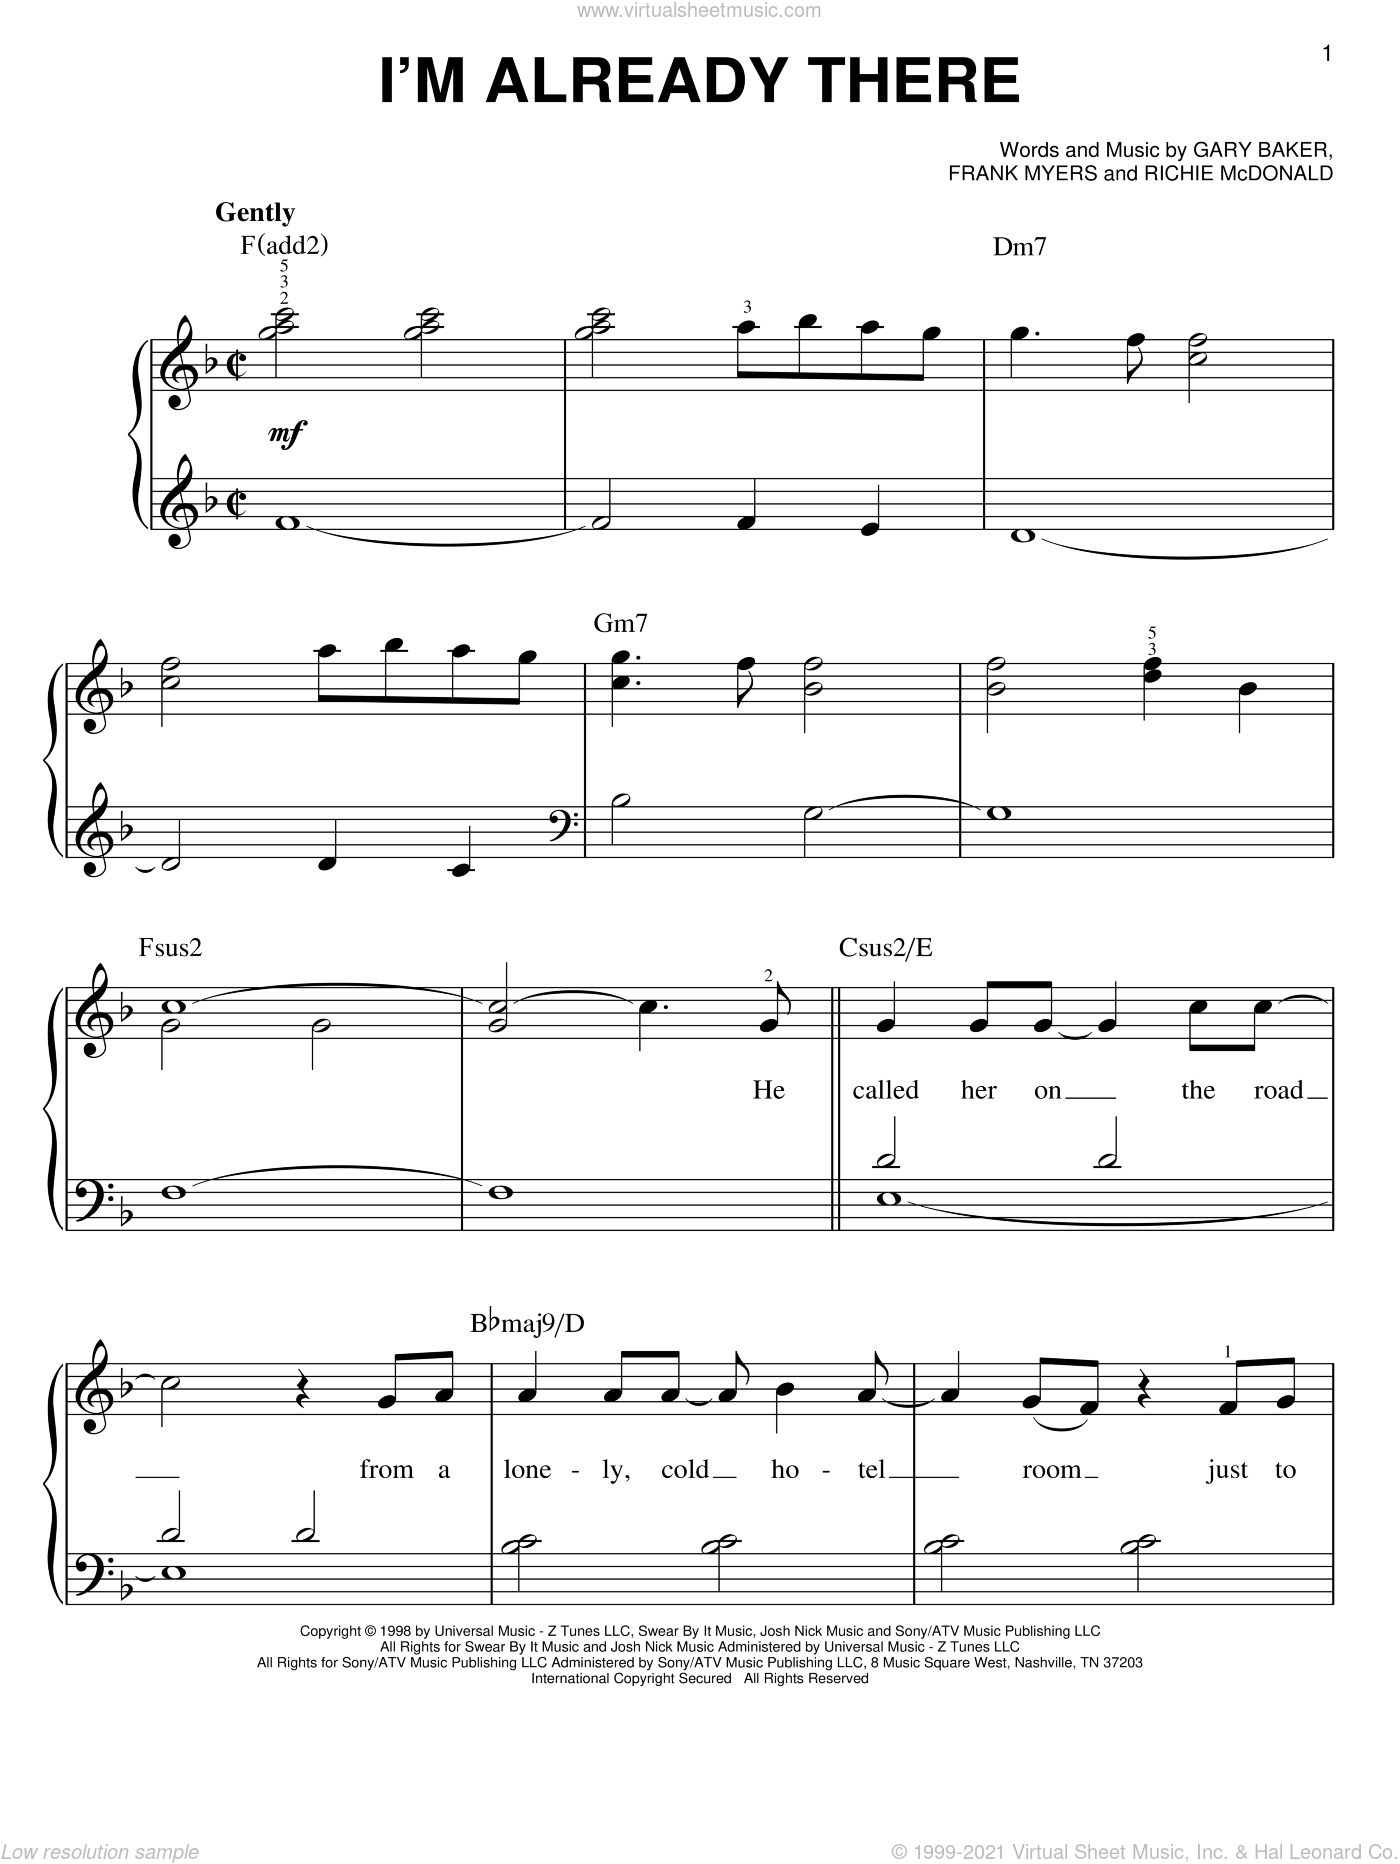 I'm Already There sheet music for piano solo by Lonestar, Frank Myers, Gary Baker and Richie McDonald, easy skill level